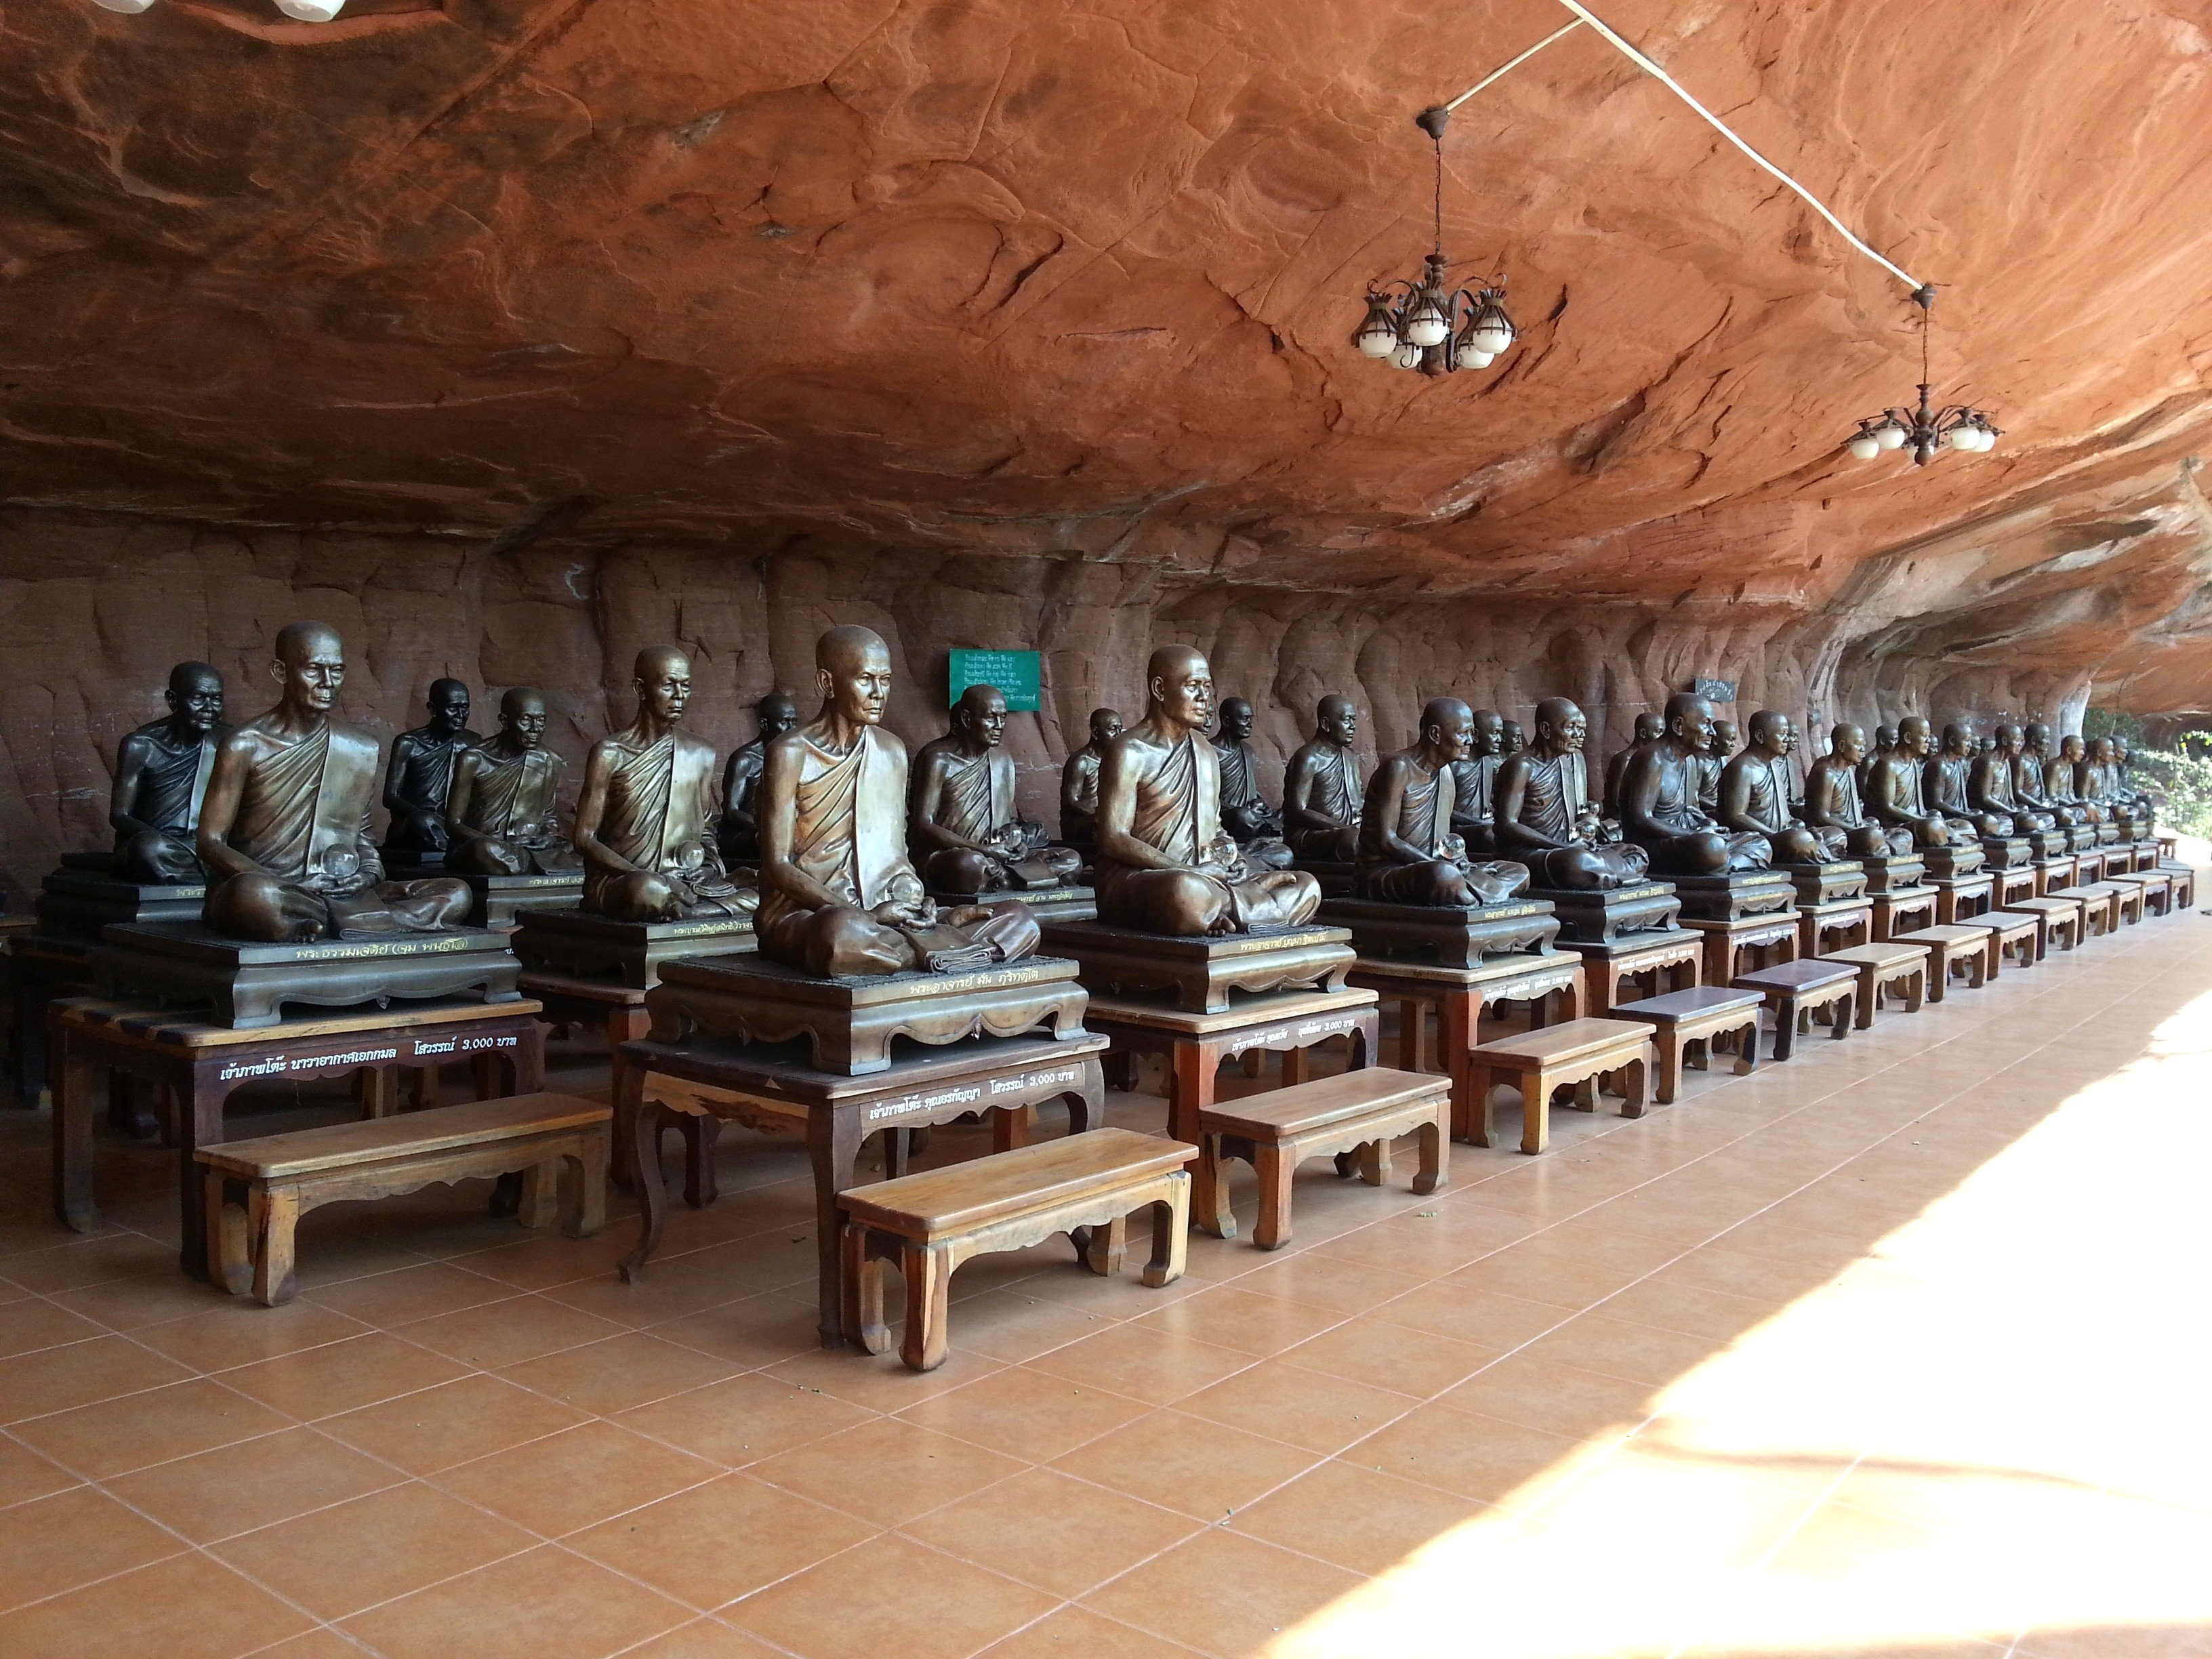 Monk statues at the shrine on Level 5